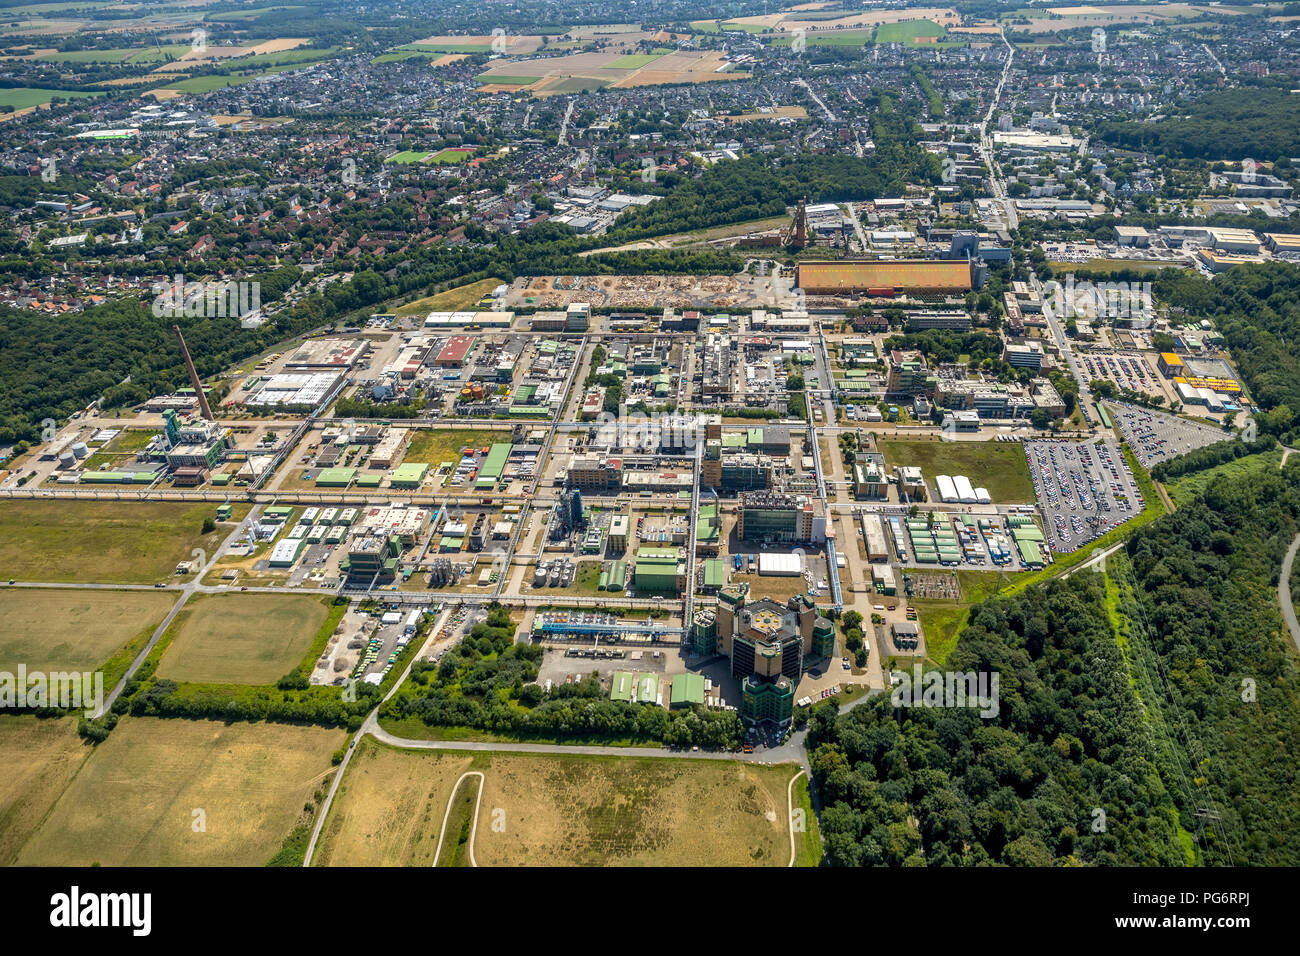 Bayer AG, formerly Scheringwerk Bergkamen, Huntsman Advanced Materials, Holzkontor Bergkamen GmbH & Co. KG, Bergkamen, Ruhr area, North Rhine-Westphal - Stock Image